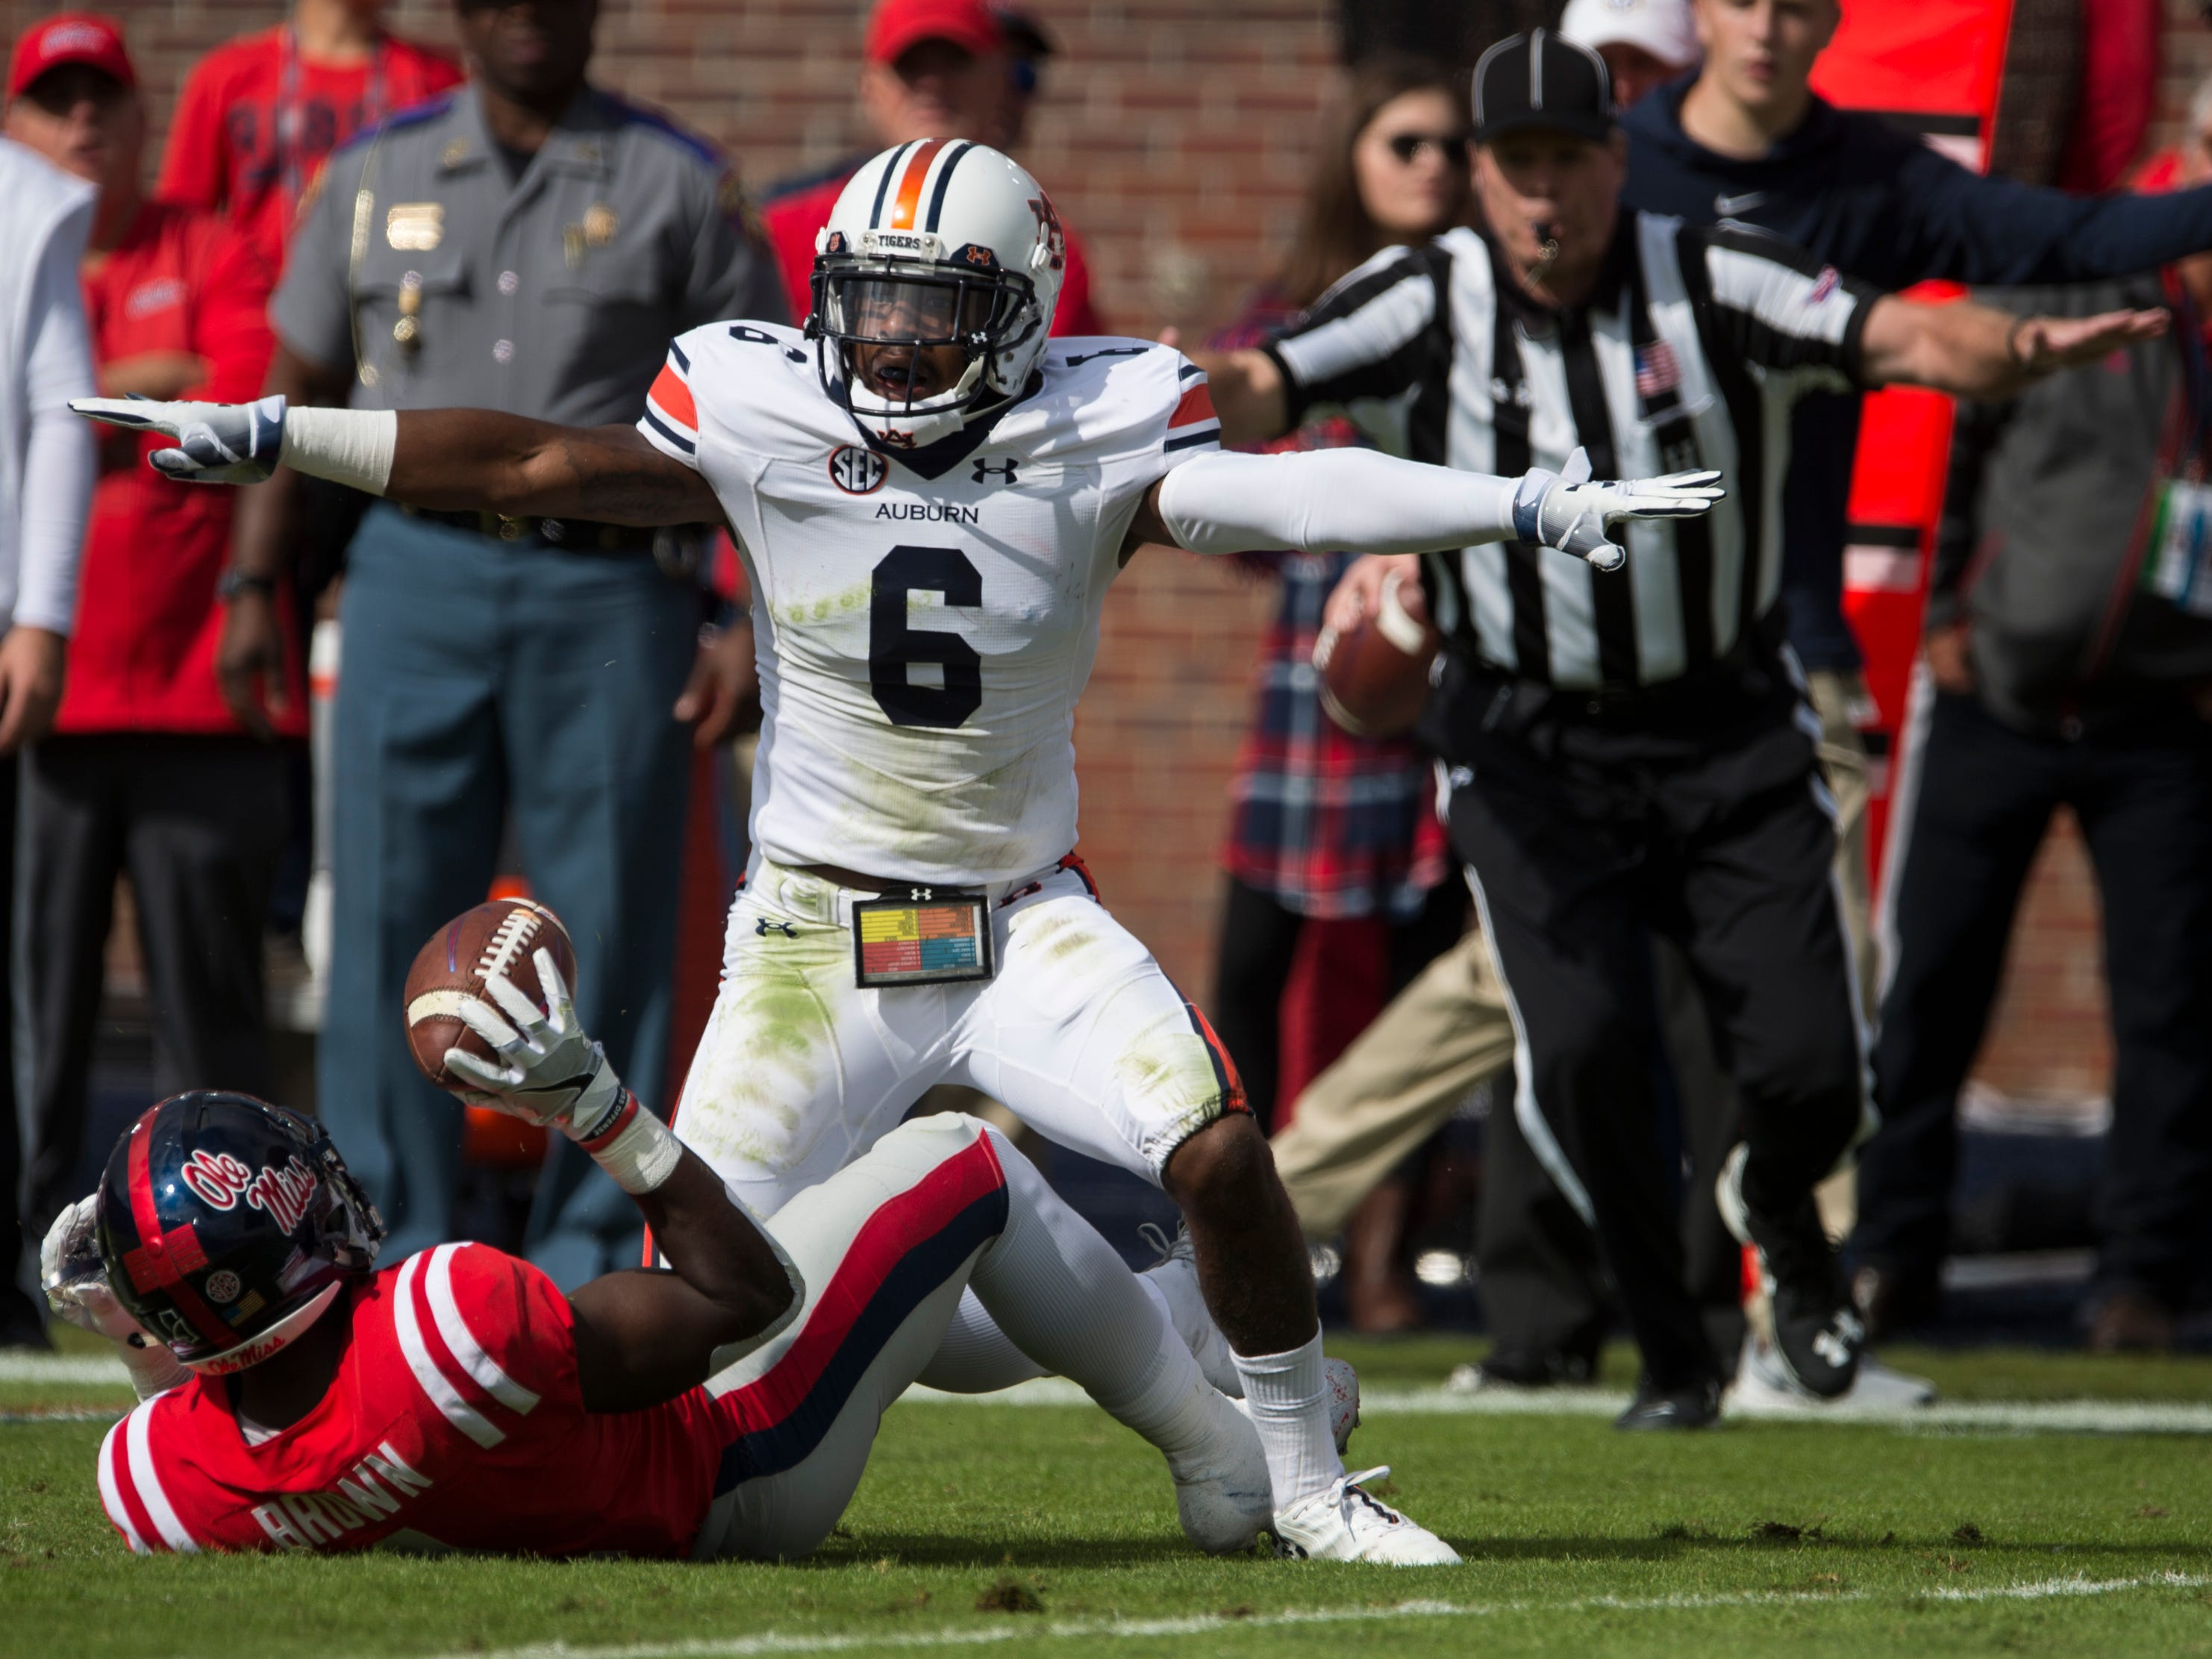 Auburn's Christian Tutt (6) reacts after Ole Miss' A.J. Brown  (1) drops the ball at Vaught-Hemingway Stadium in Oxford, Miss., on Saturday, Oct. 20, 2018. Auburn leads Ole Miss 10-6 at halftime.